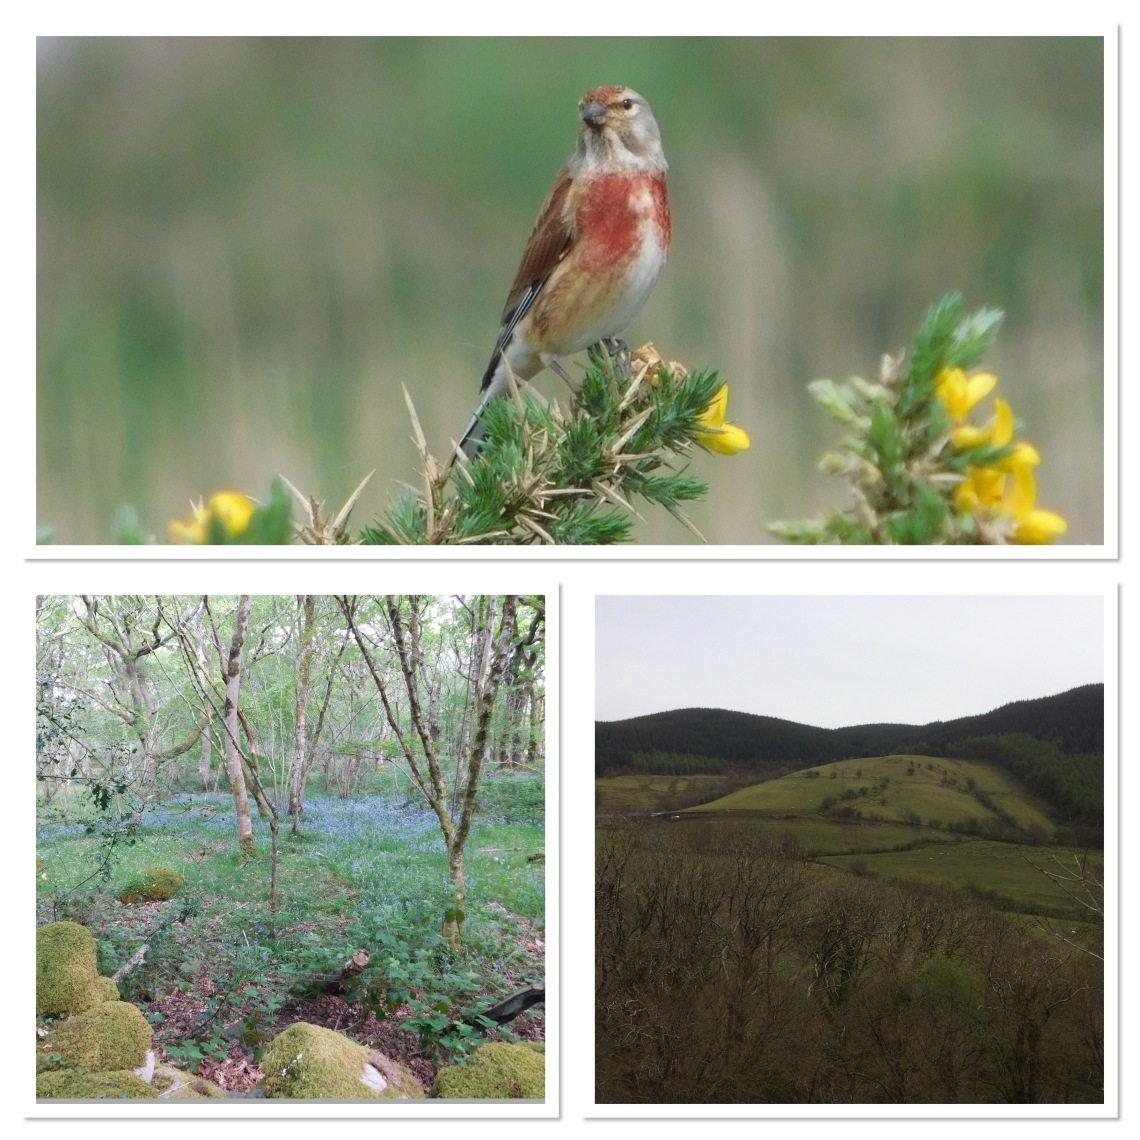 Male linnet and views from Coed Garth Gell